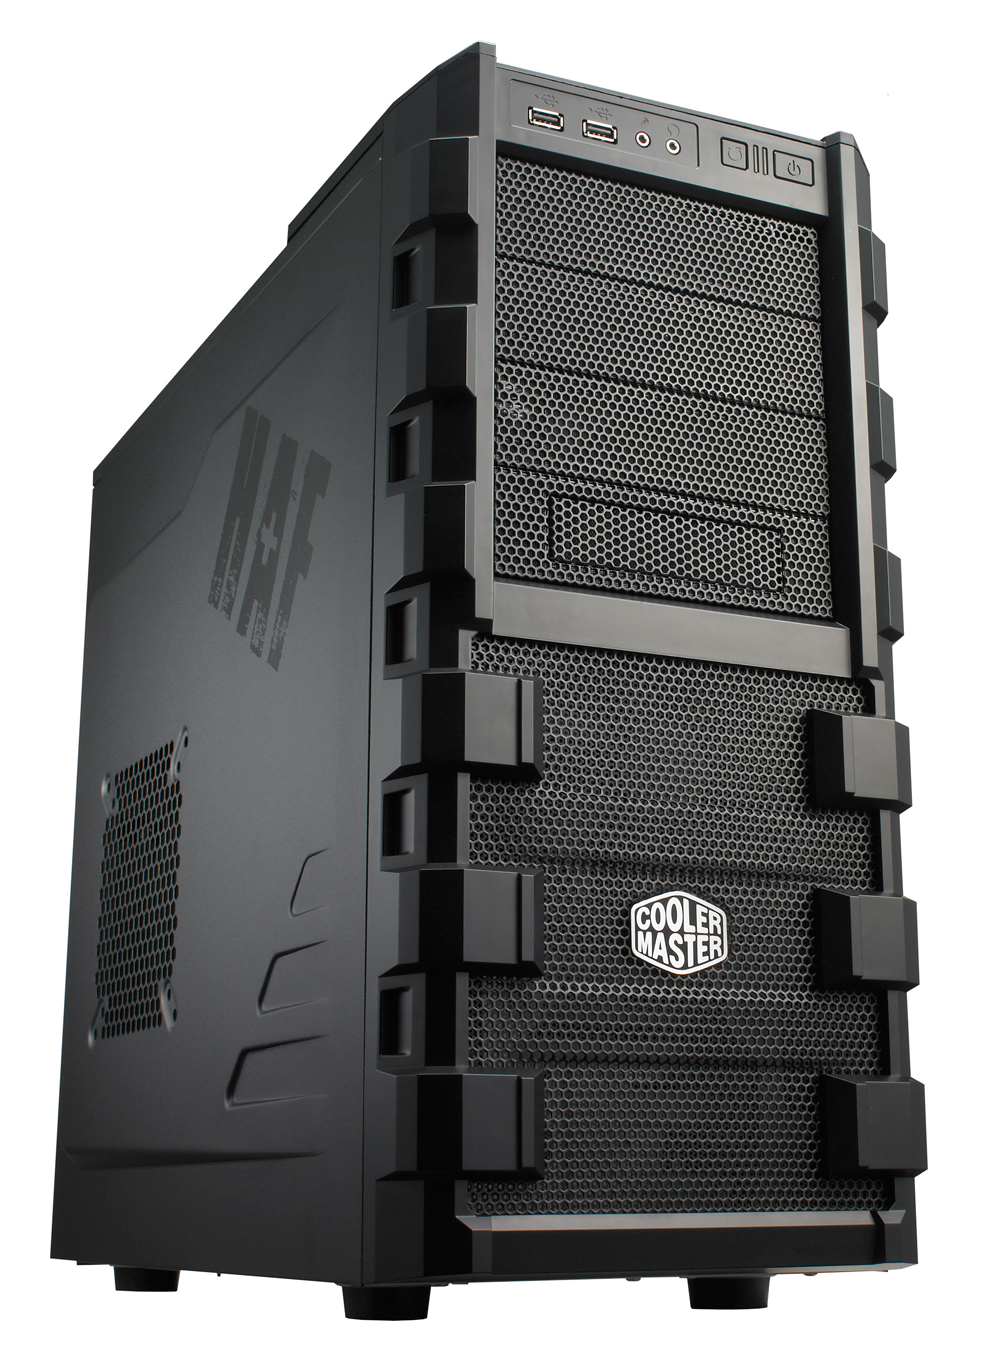 COOLER MASTER HAF 912 - ATX - MID TOWER - COMPUTER CASE - RC-912-KKN1